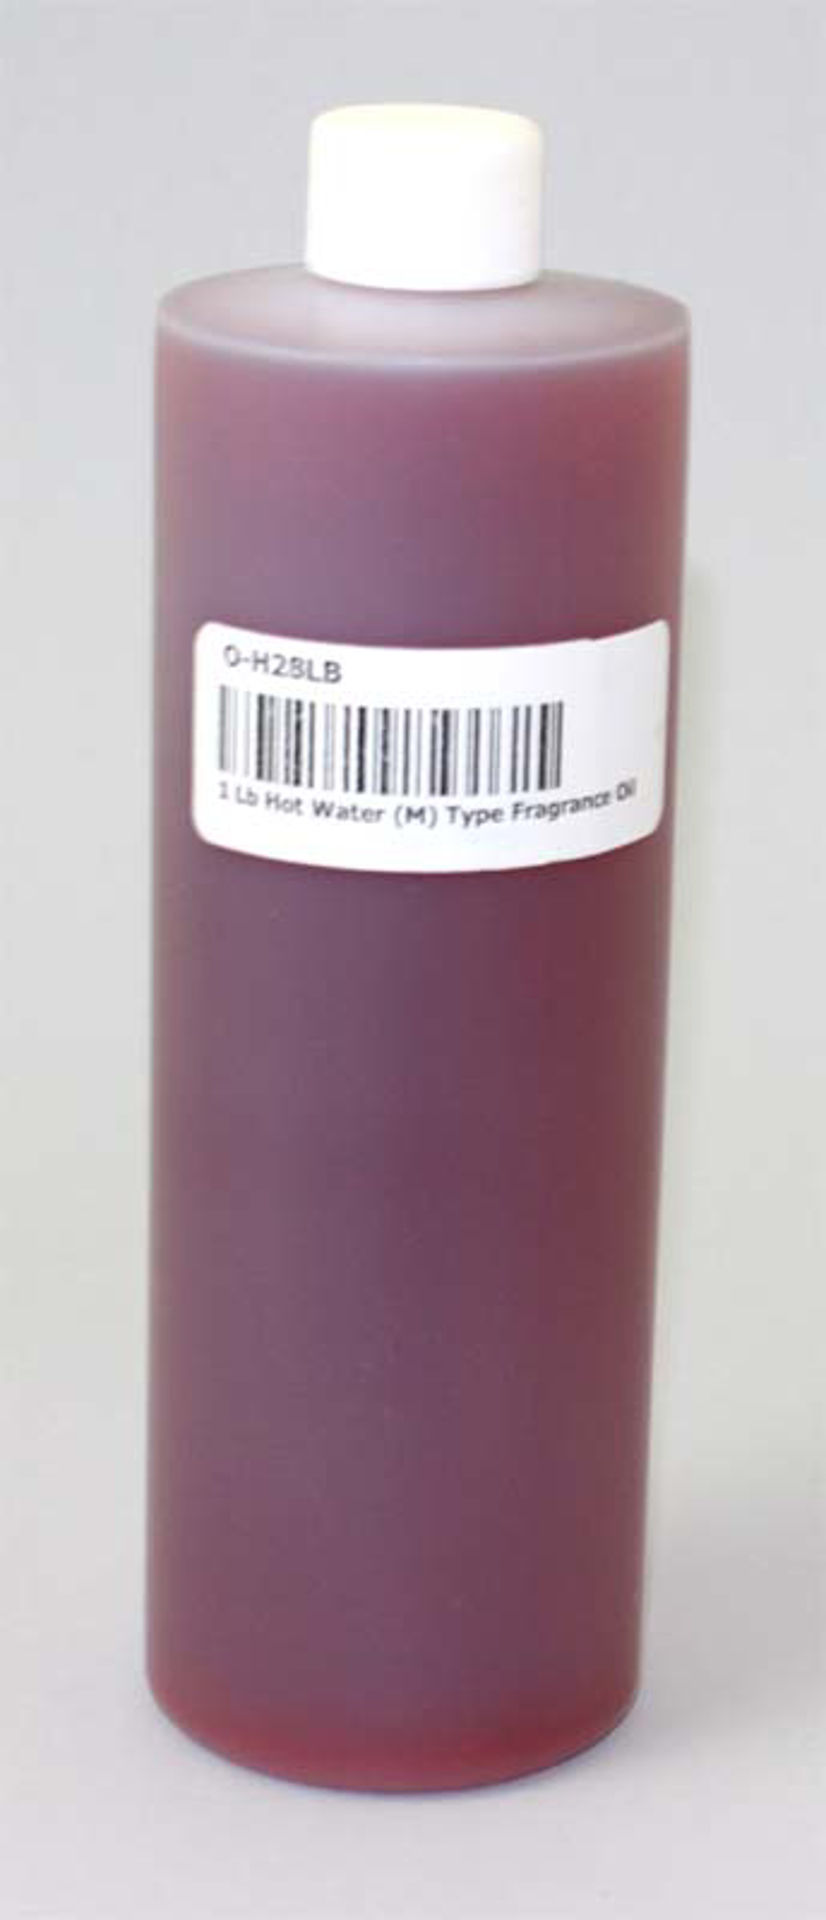 Picture of 1 Lb Hot Water (M) Type Fragrance Oil